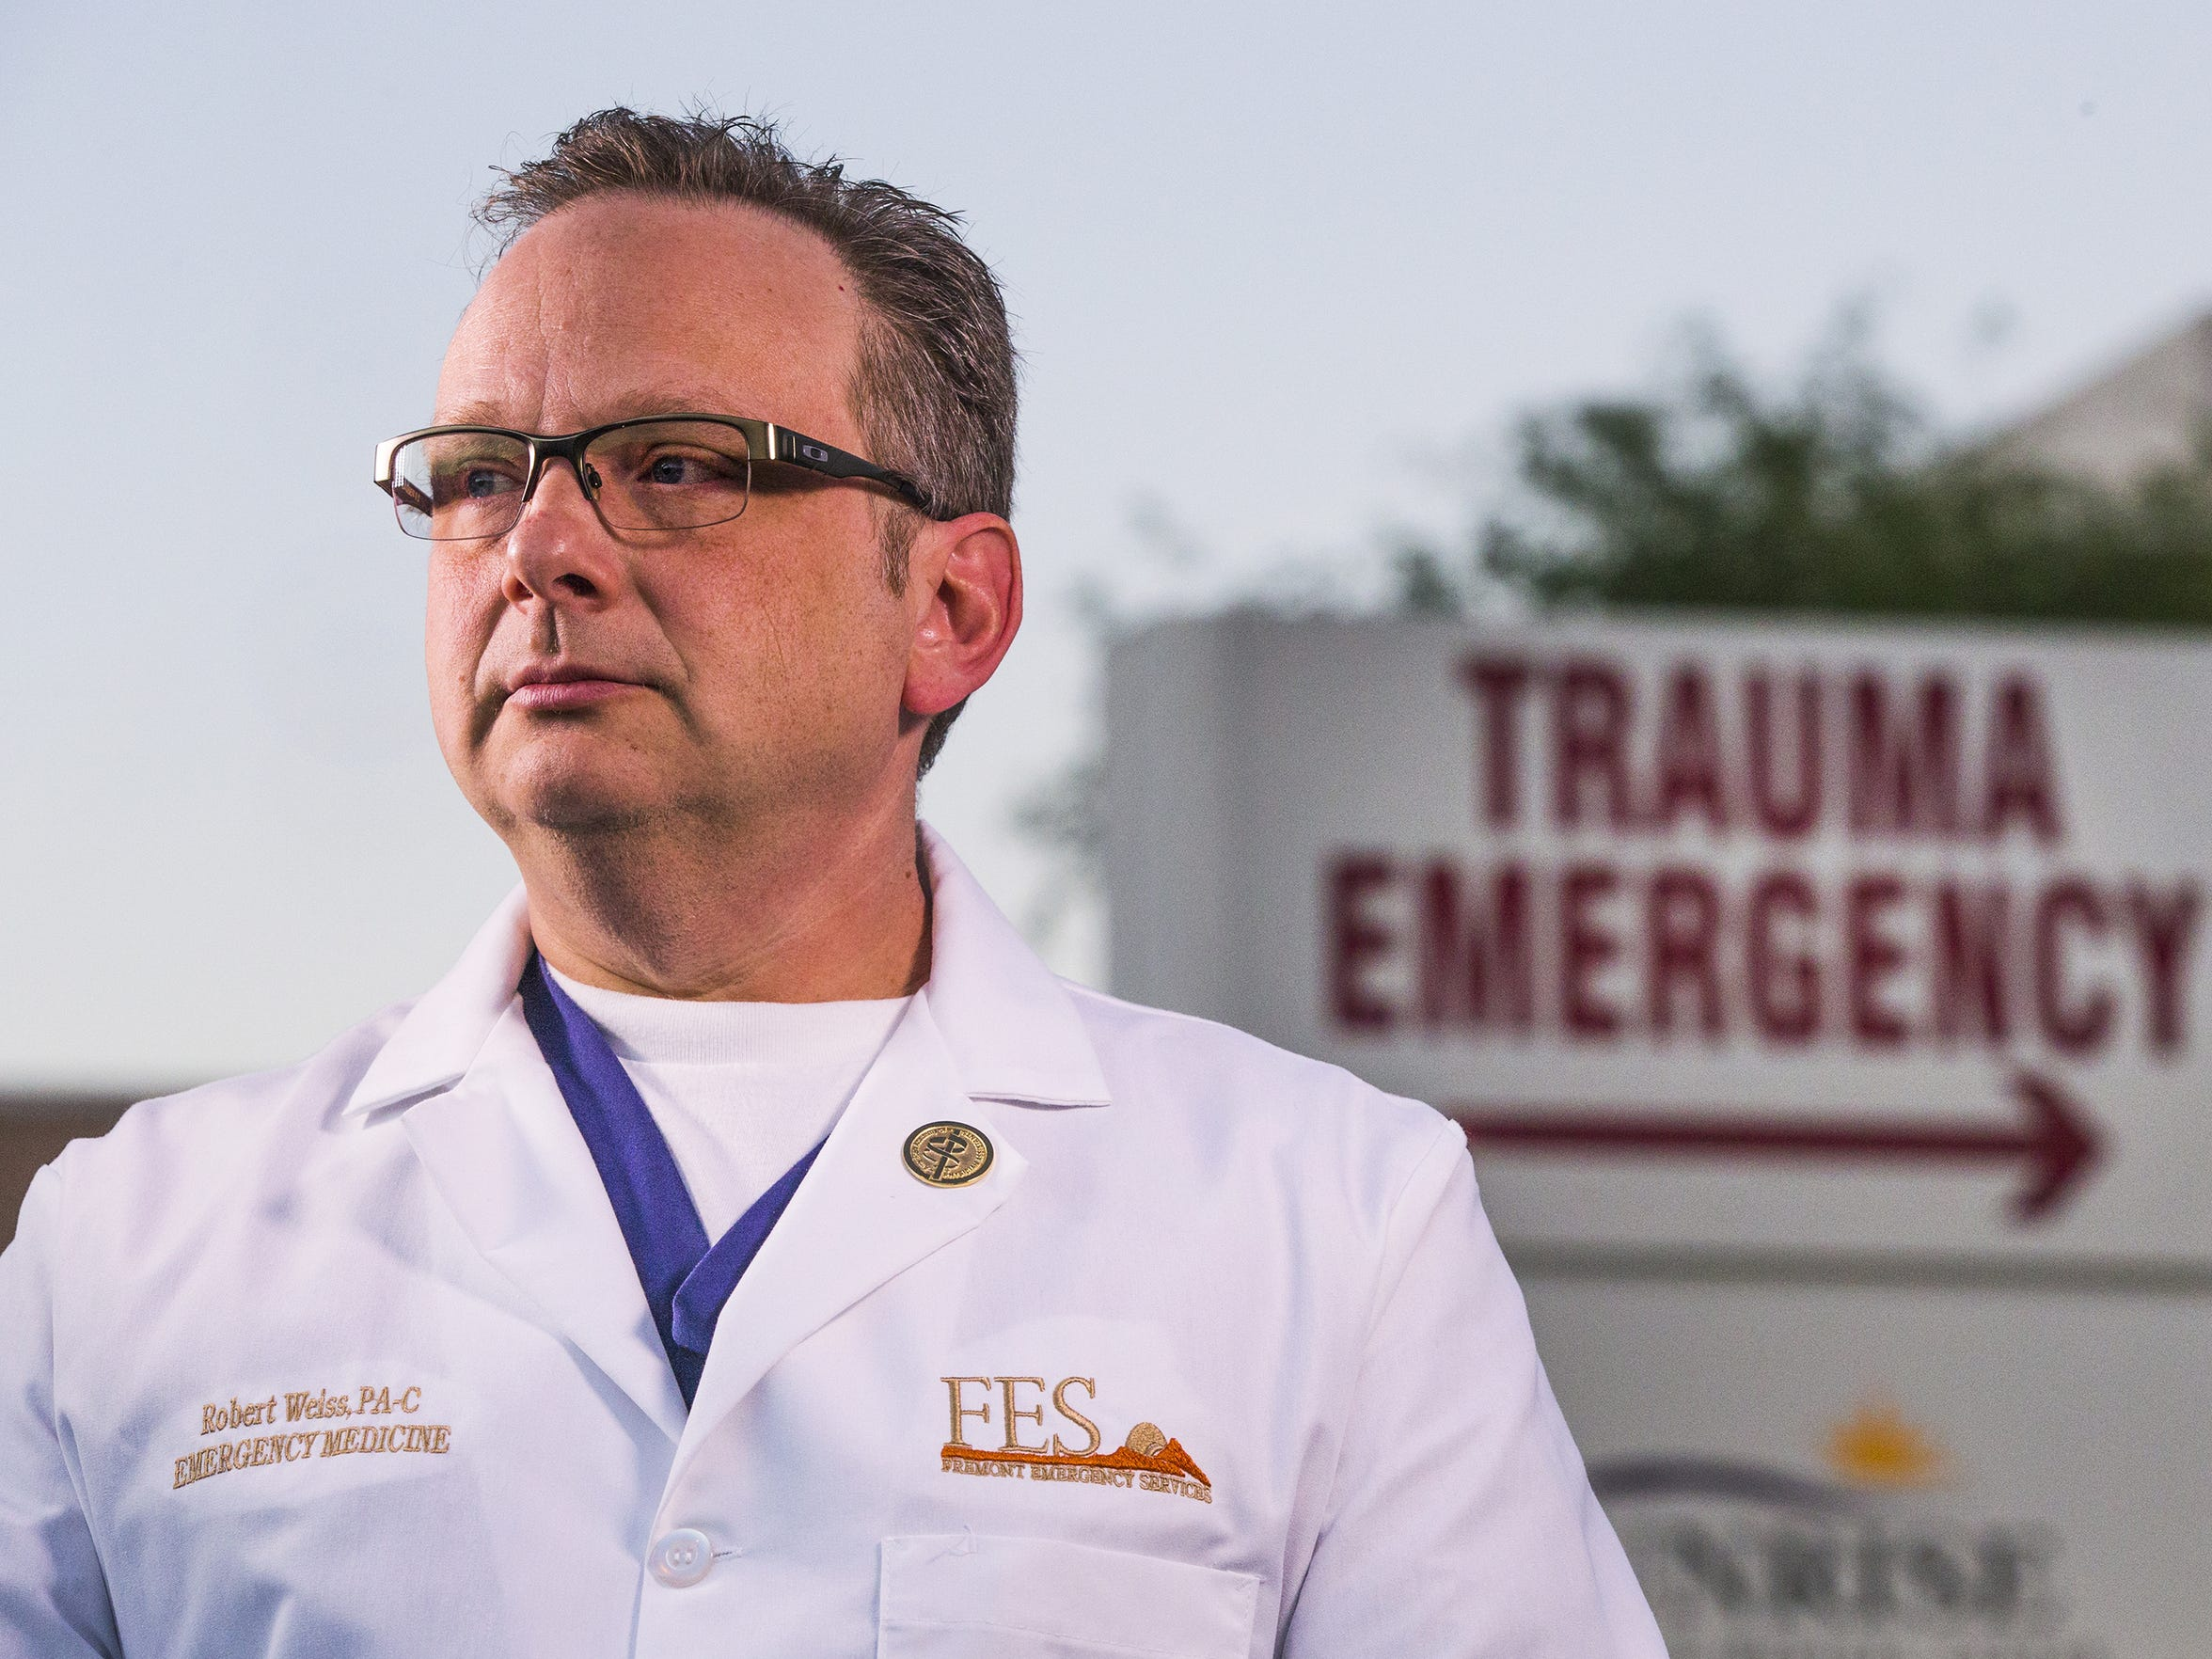 Physician's assistant Robert Weiss was attending the Route 91 Harvest festival with his wife, Beth, when the gunfire began.